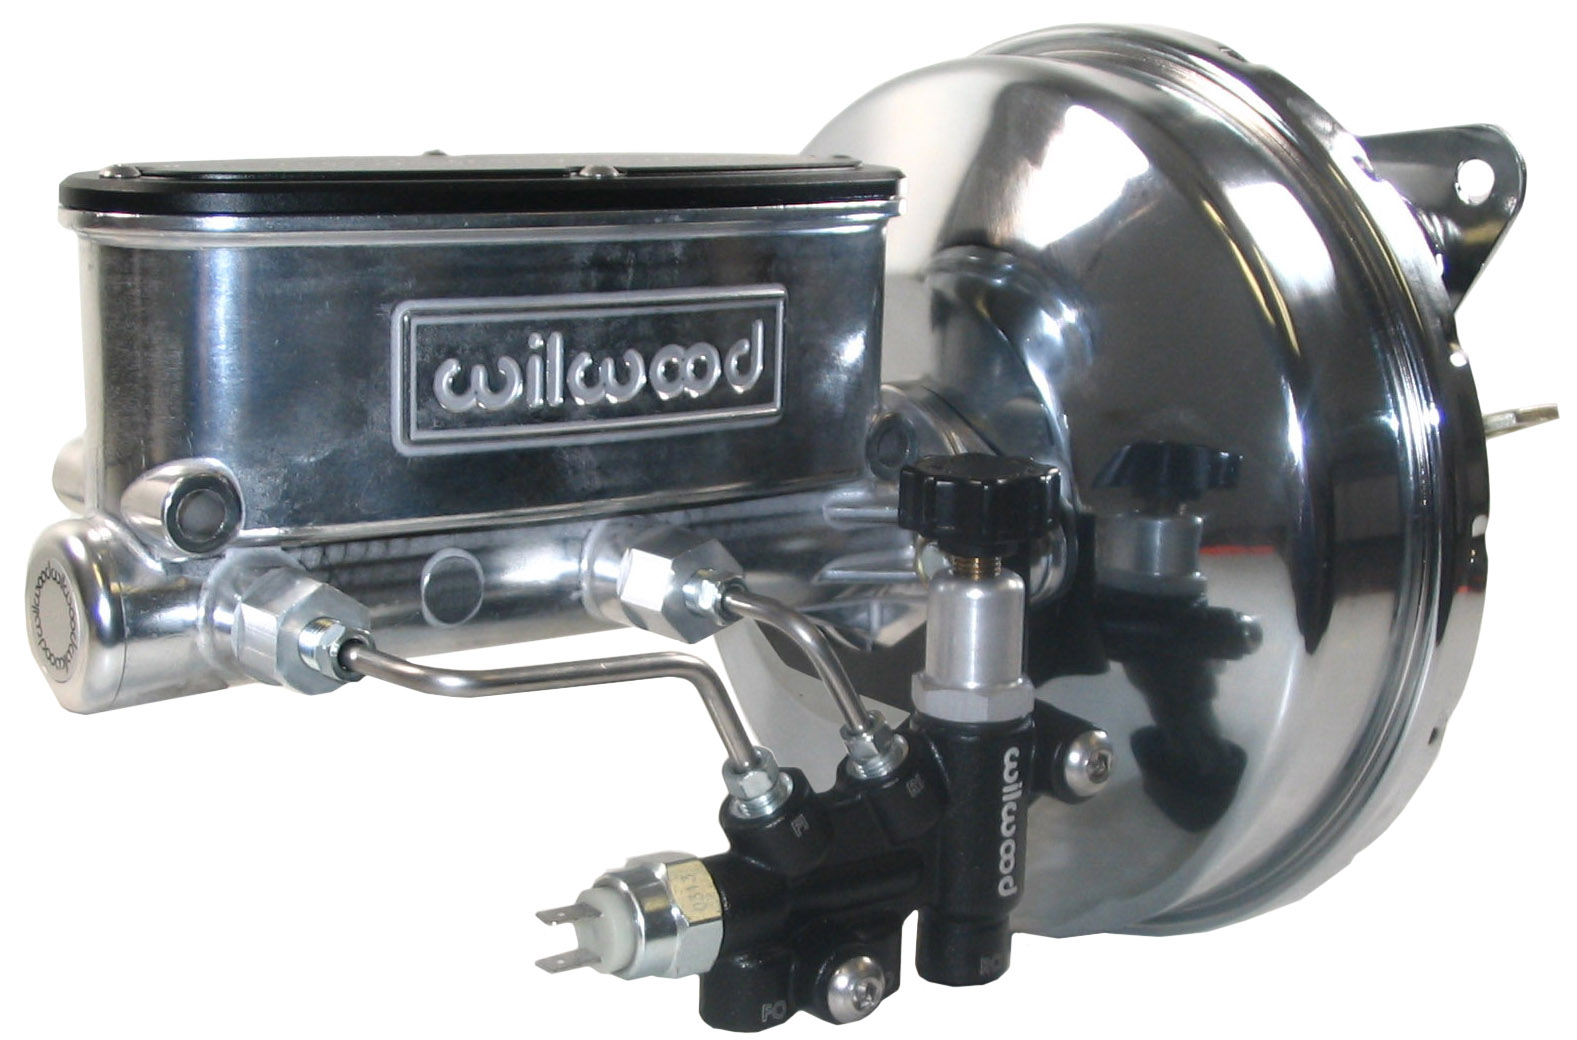 New Power Brake Booster Wilwood Polished Master Cylinder Valve. New Power Brake Booster Wilwood Polished Master Cylinder Valve6770 Mustang Ebay. Corvette. 1977 Corvette Master Cylinder Diagram At Scoala.co